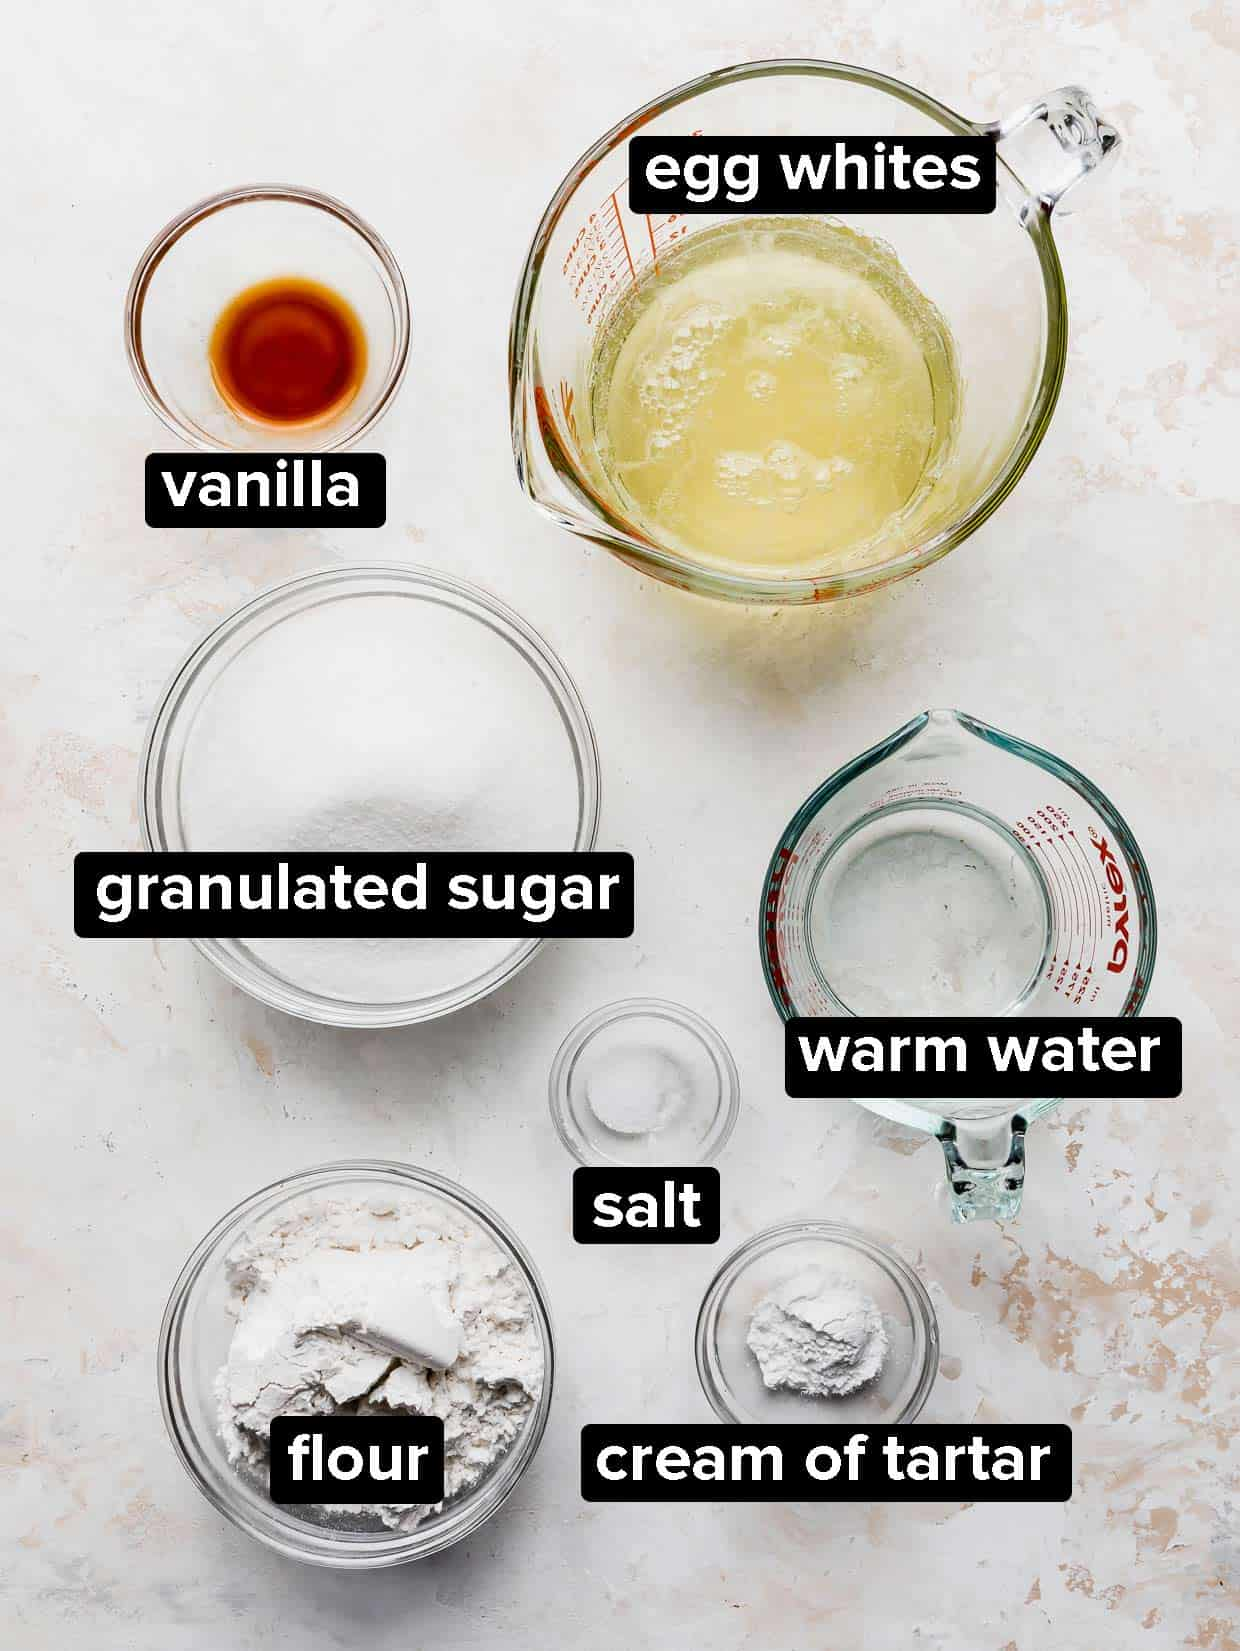 Ingredients used to make angel food cake on a textured cream background.